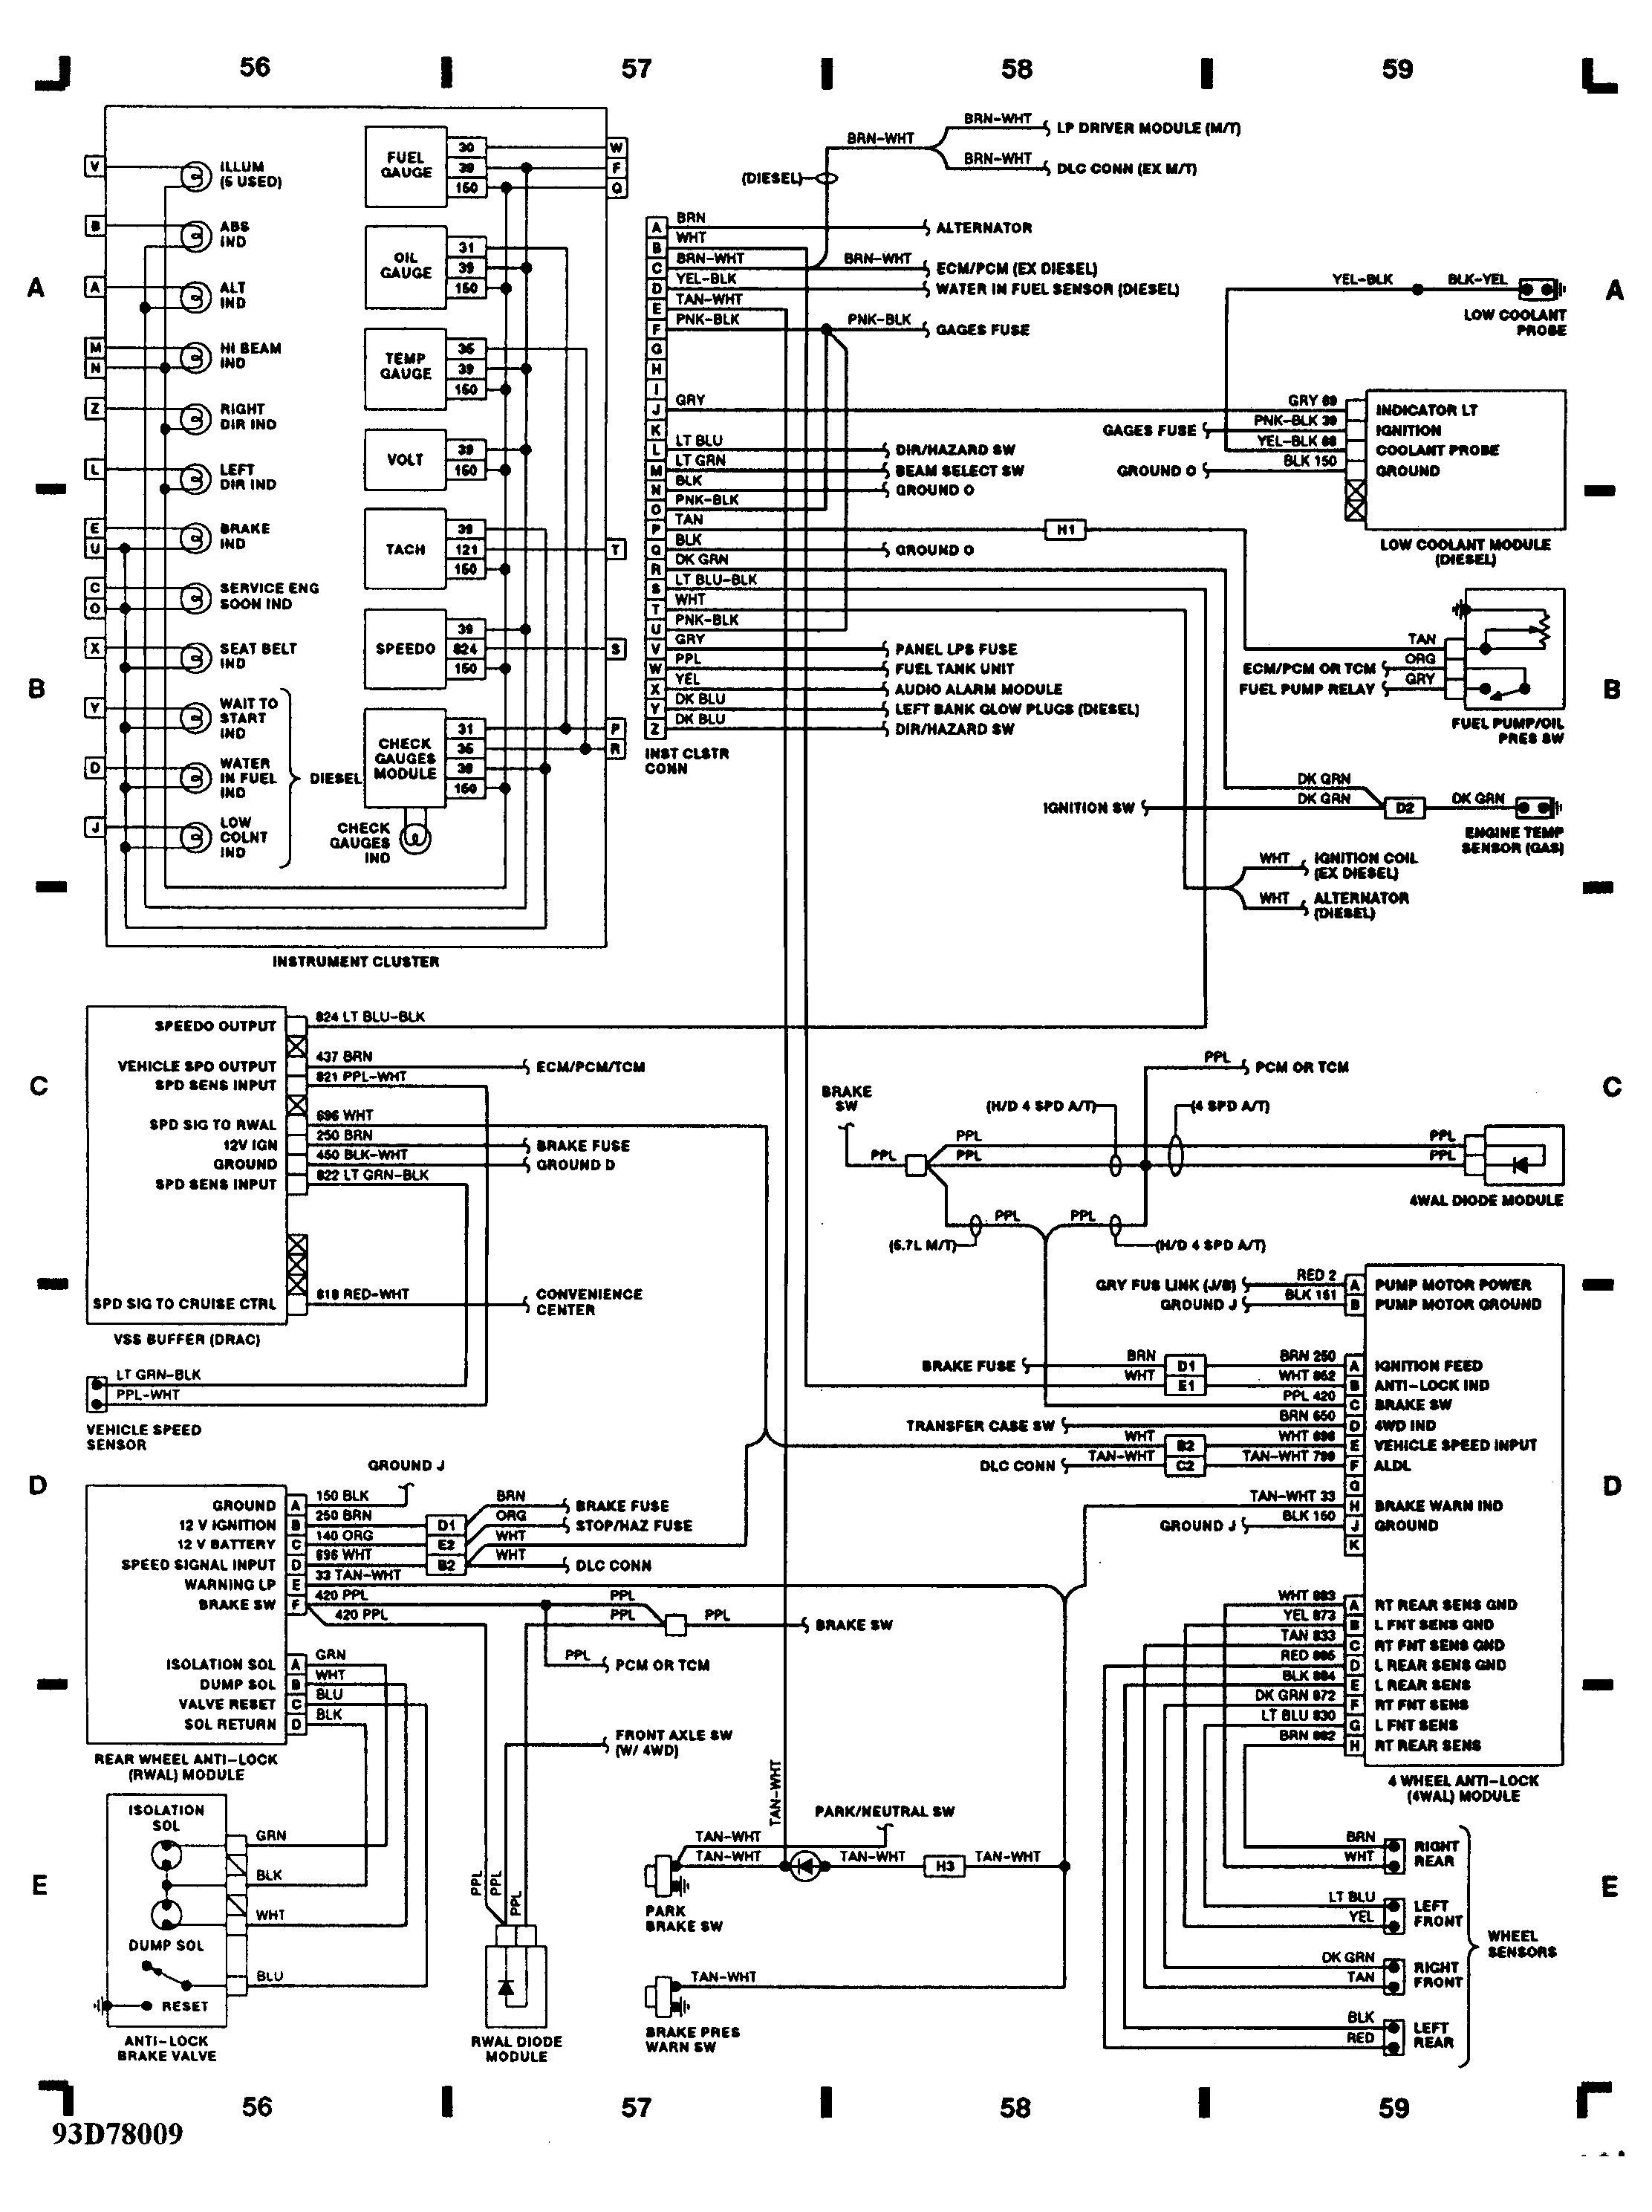 Chevy S10 4 3 Vortec Engine Diagram Start Building A Wiring Diagram \u2022  3.1L Engine Diagram 98 4 3l Engine Distributor Wiring Diagram